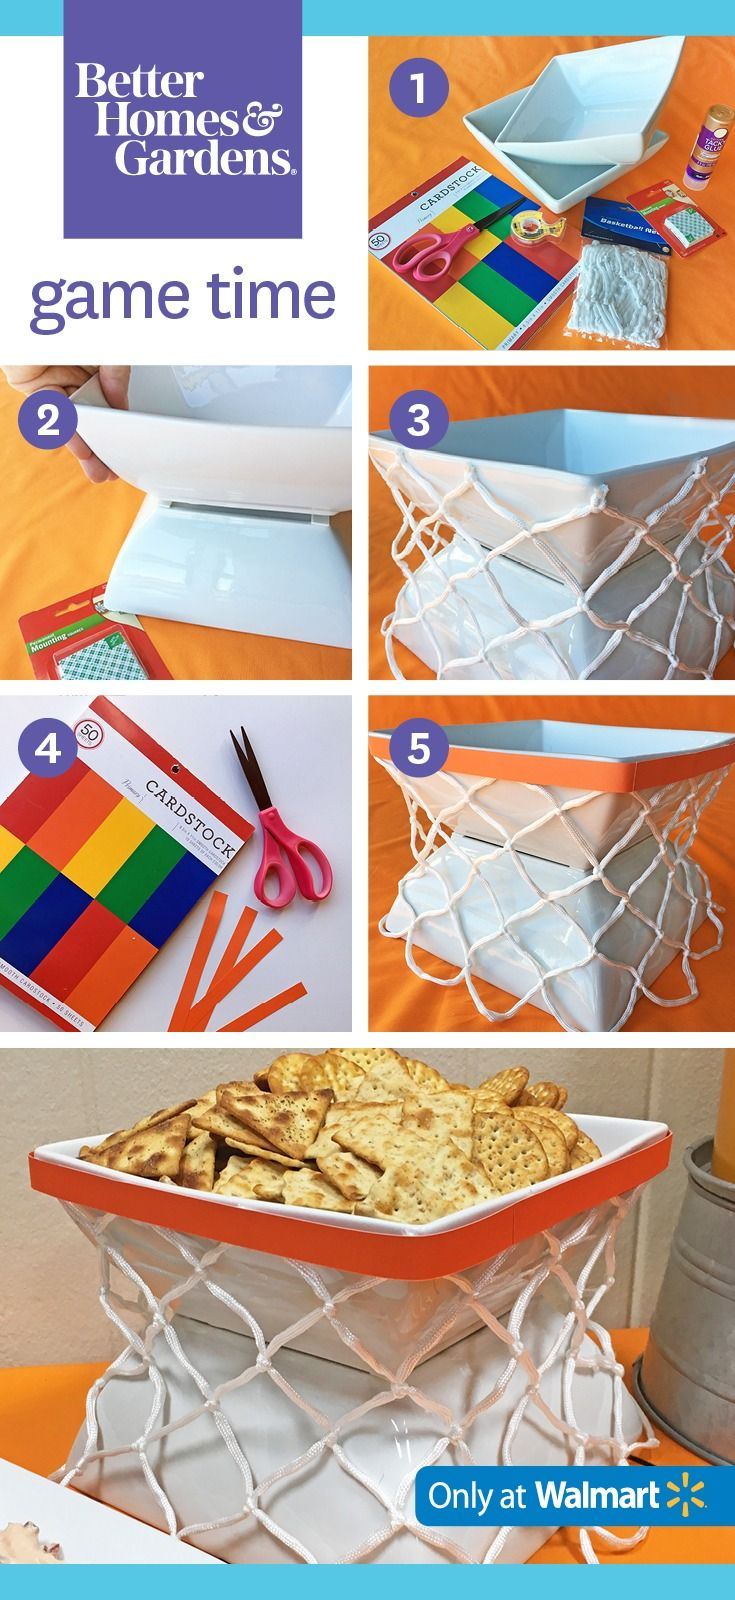 A basketball hoop snack bowl is essential for your party! (1) Tape two bowls together with mounting squares. (2) Cut a net above the knots and glue it to the bowl. (3) Affix an orange paper strip to top as shown.